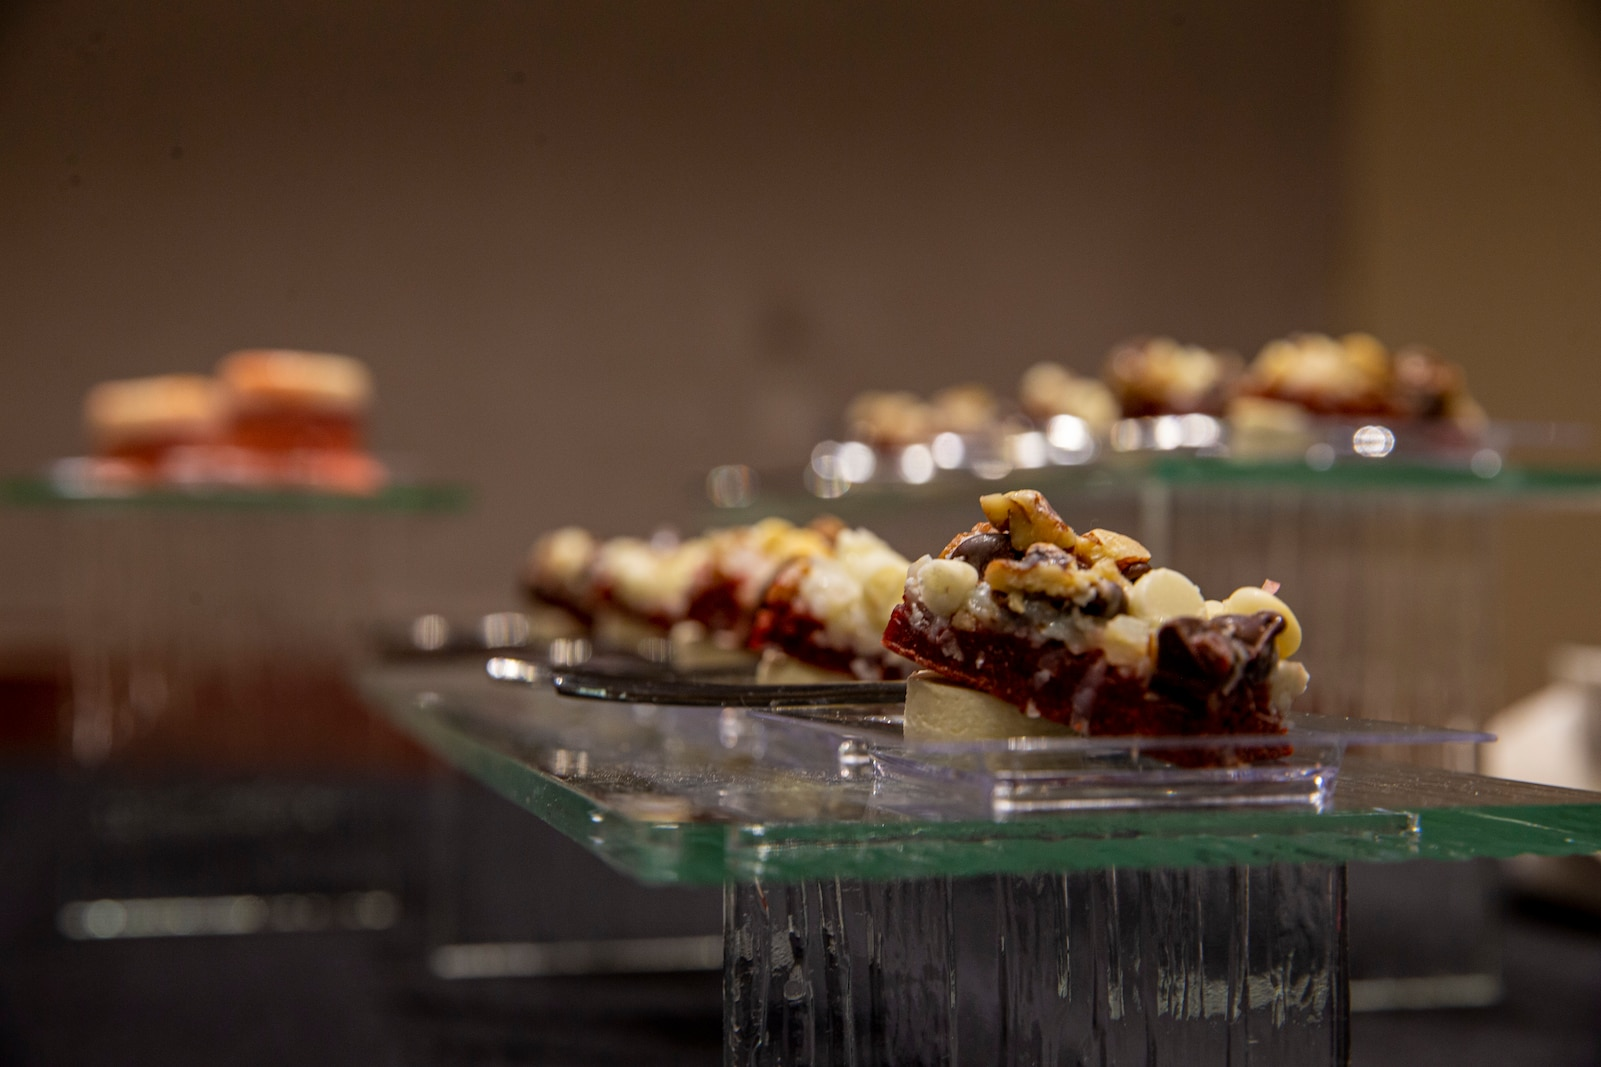 Red velvet seven layer bars are placed on display at a reception before the Friday Evening Parade at Marine Barracks Washington, D.C., April 30, 2021.